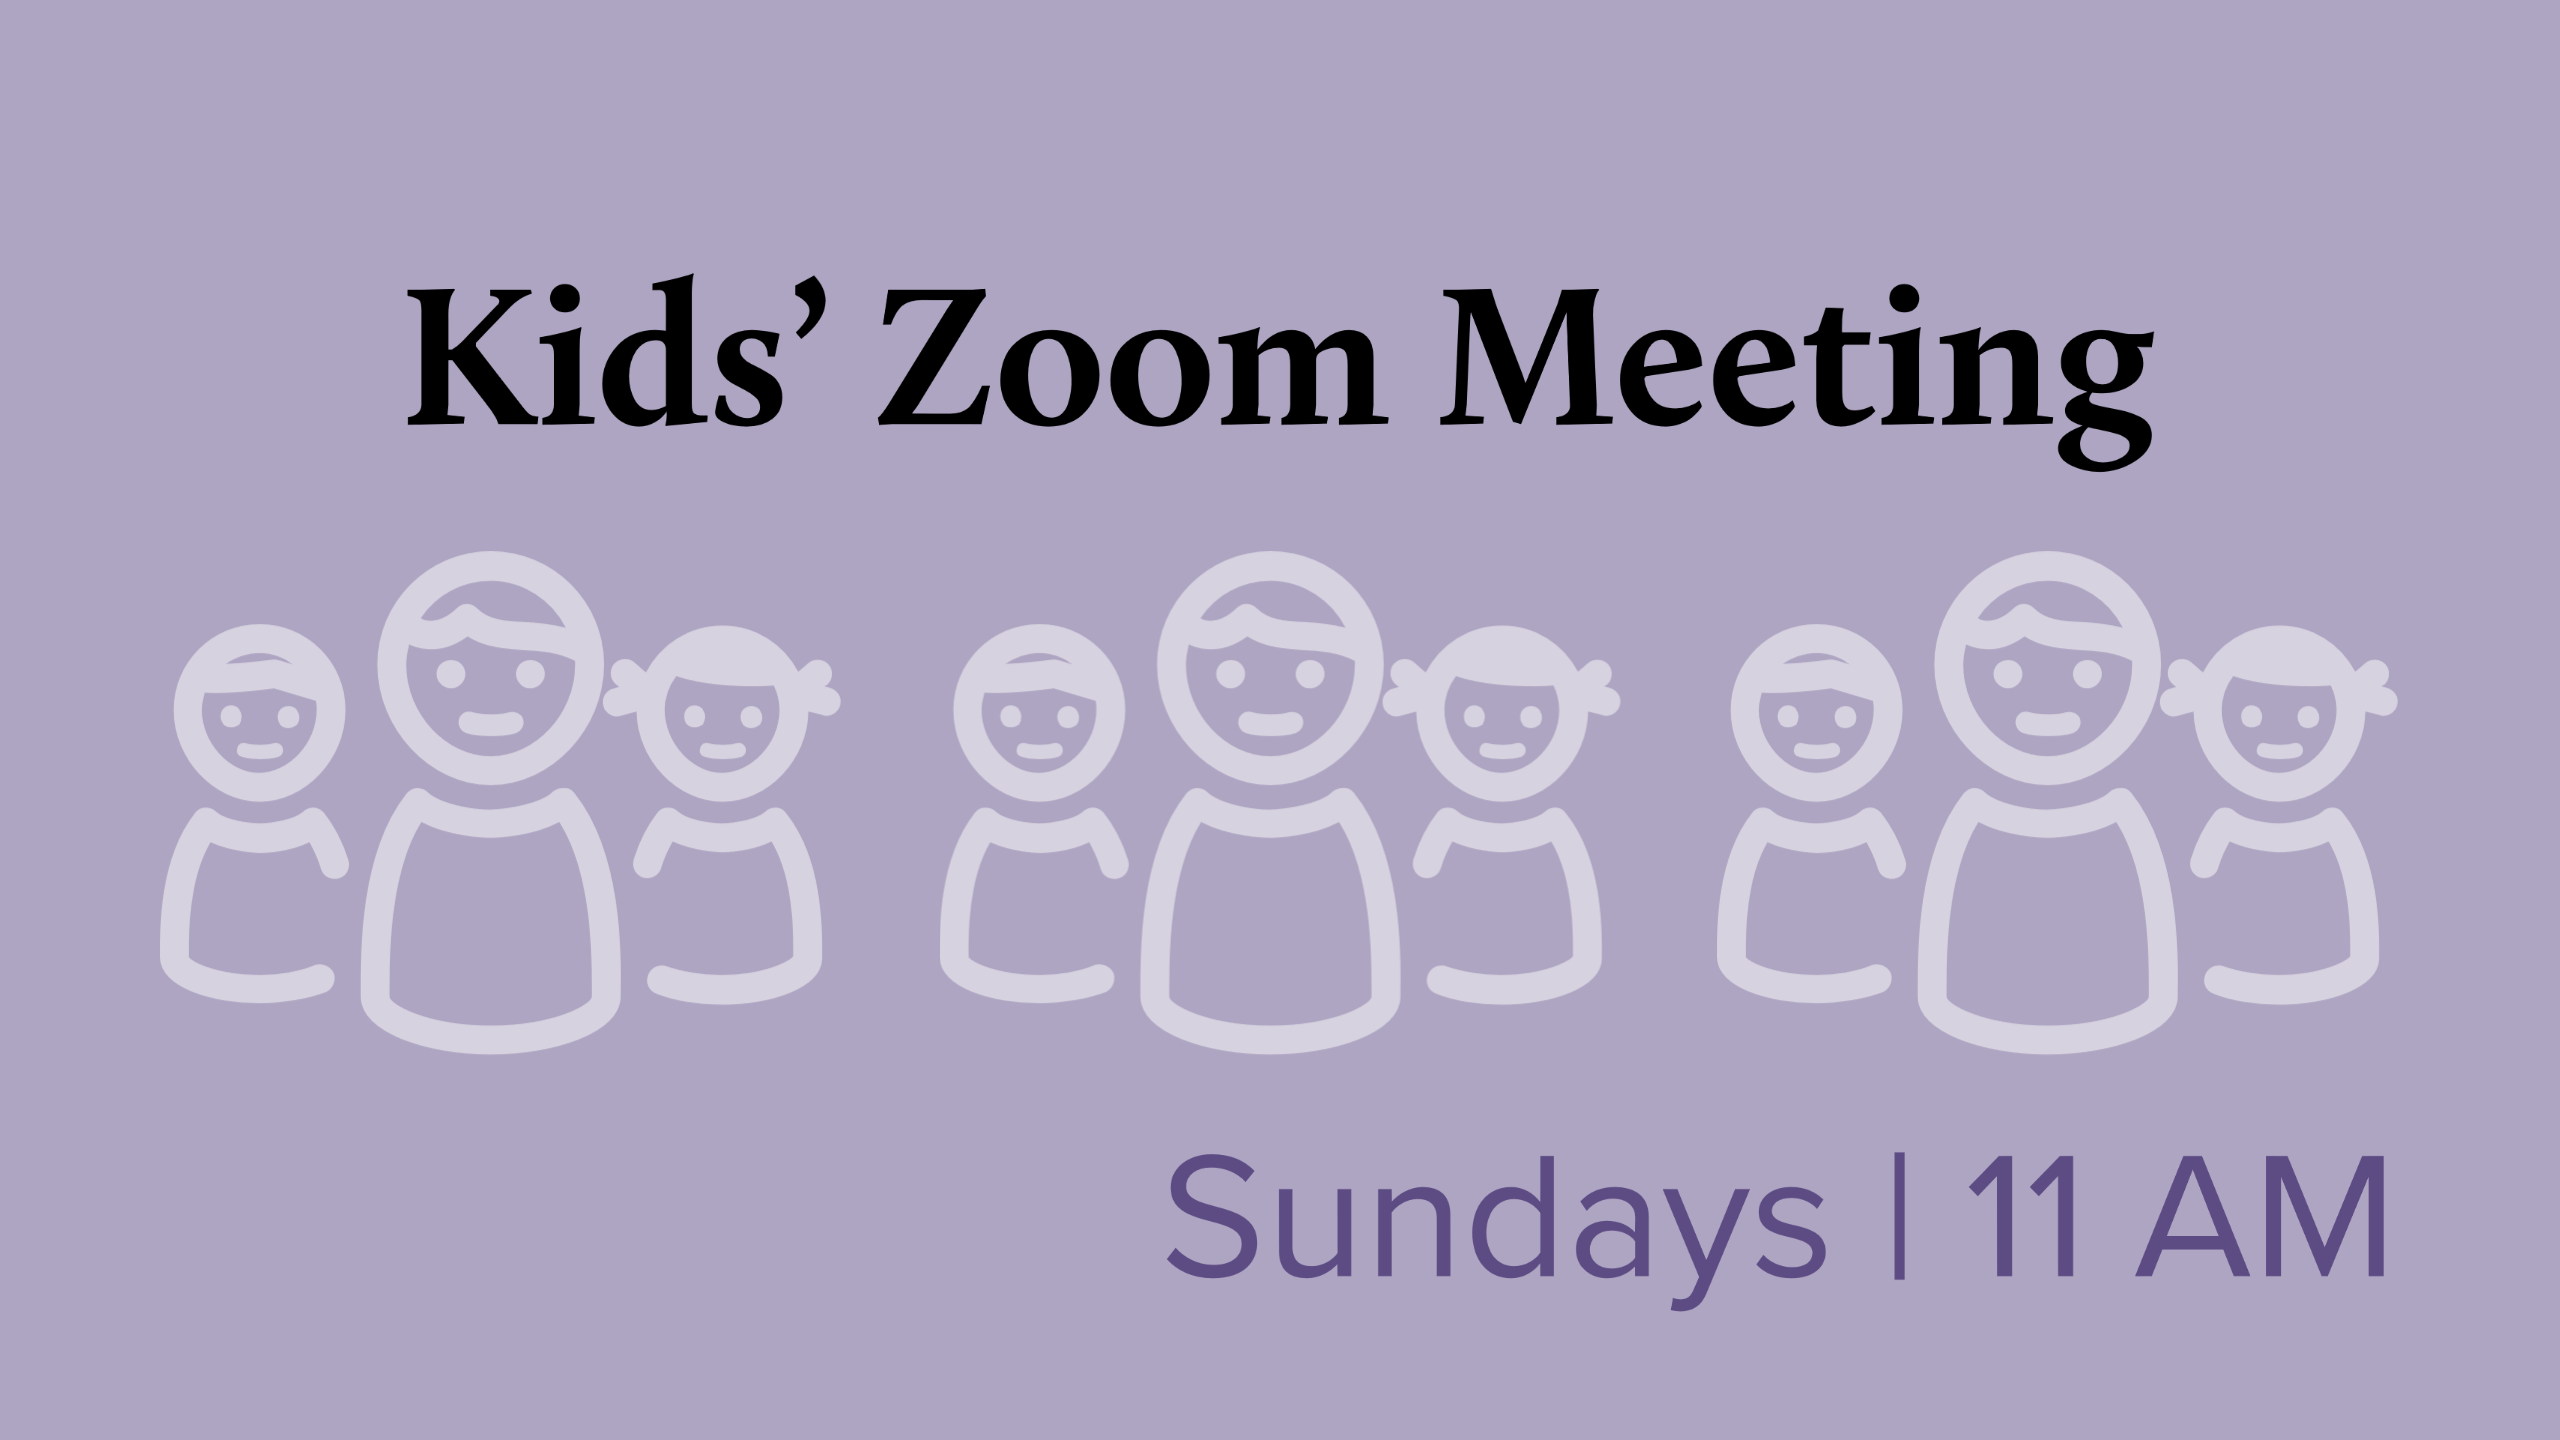 """pale purple outlines of kids with the text """"Kids' Zoom Meeting Sundays 